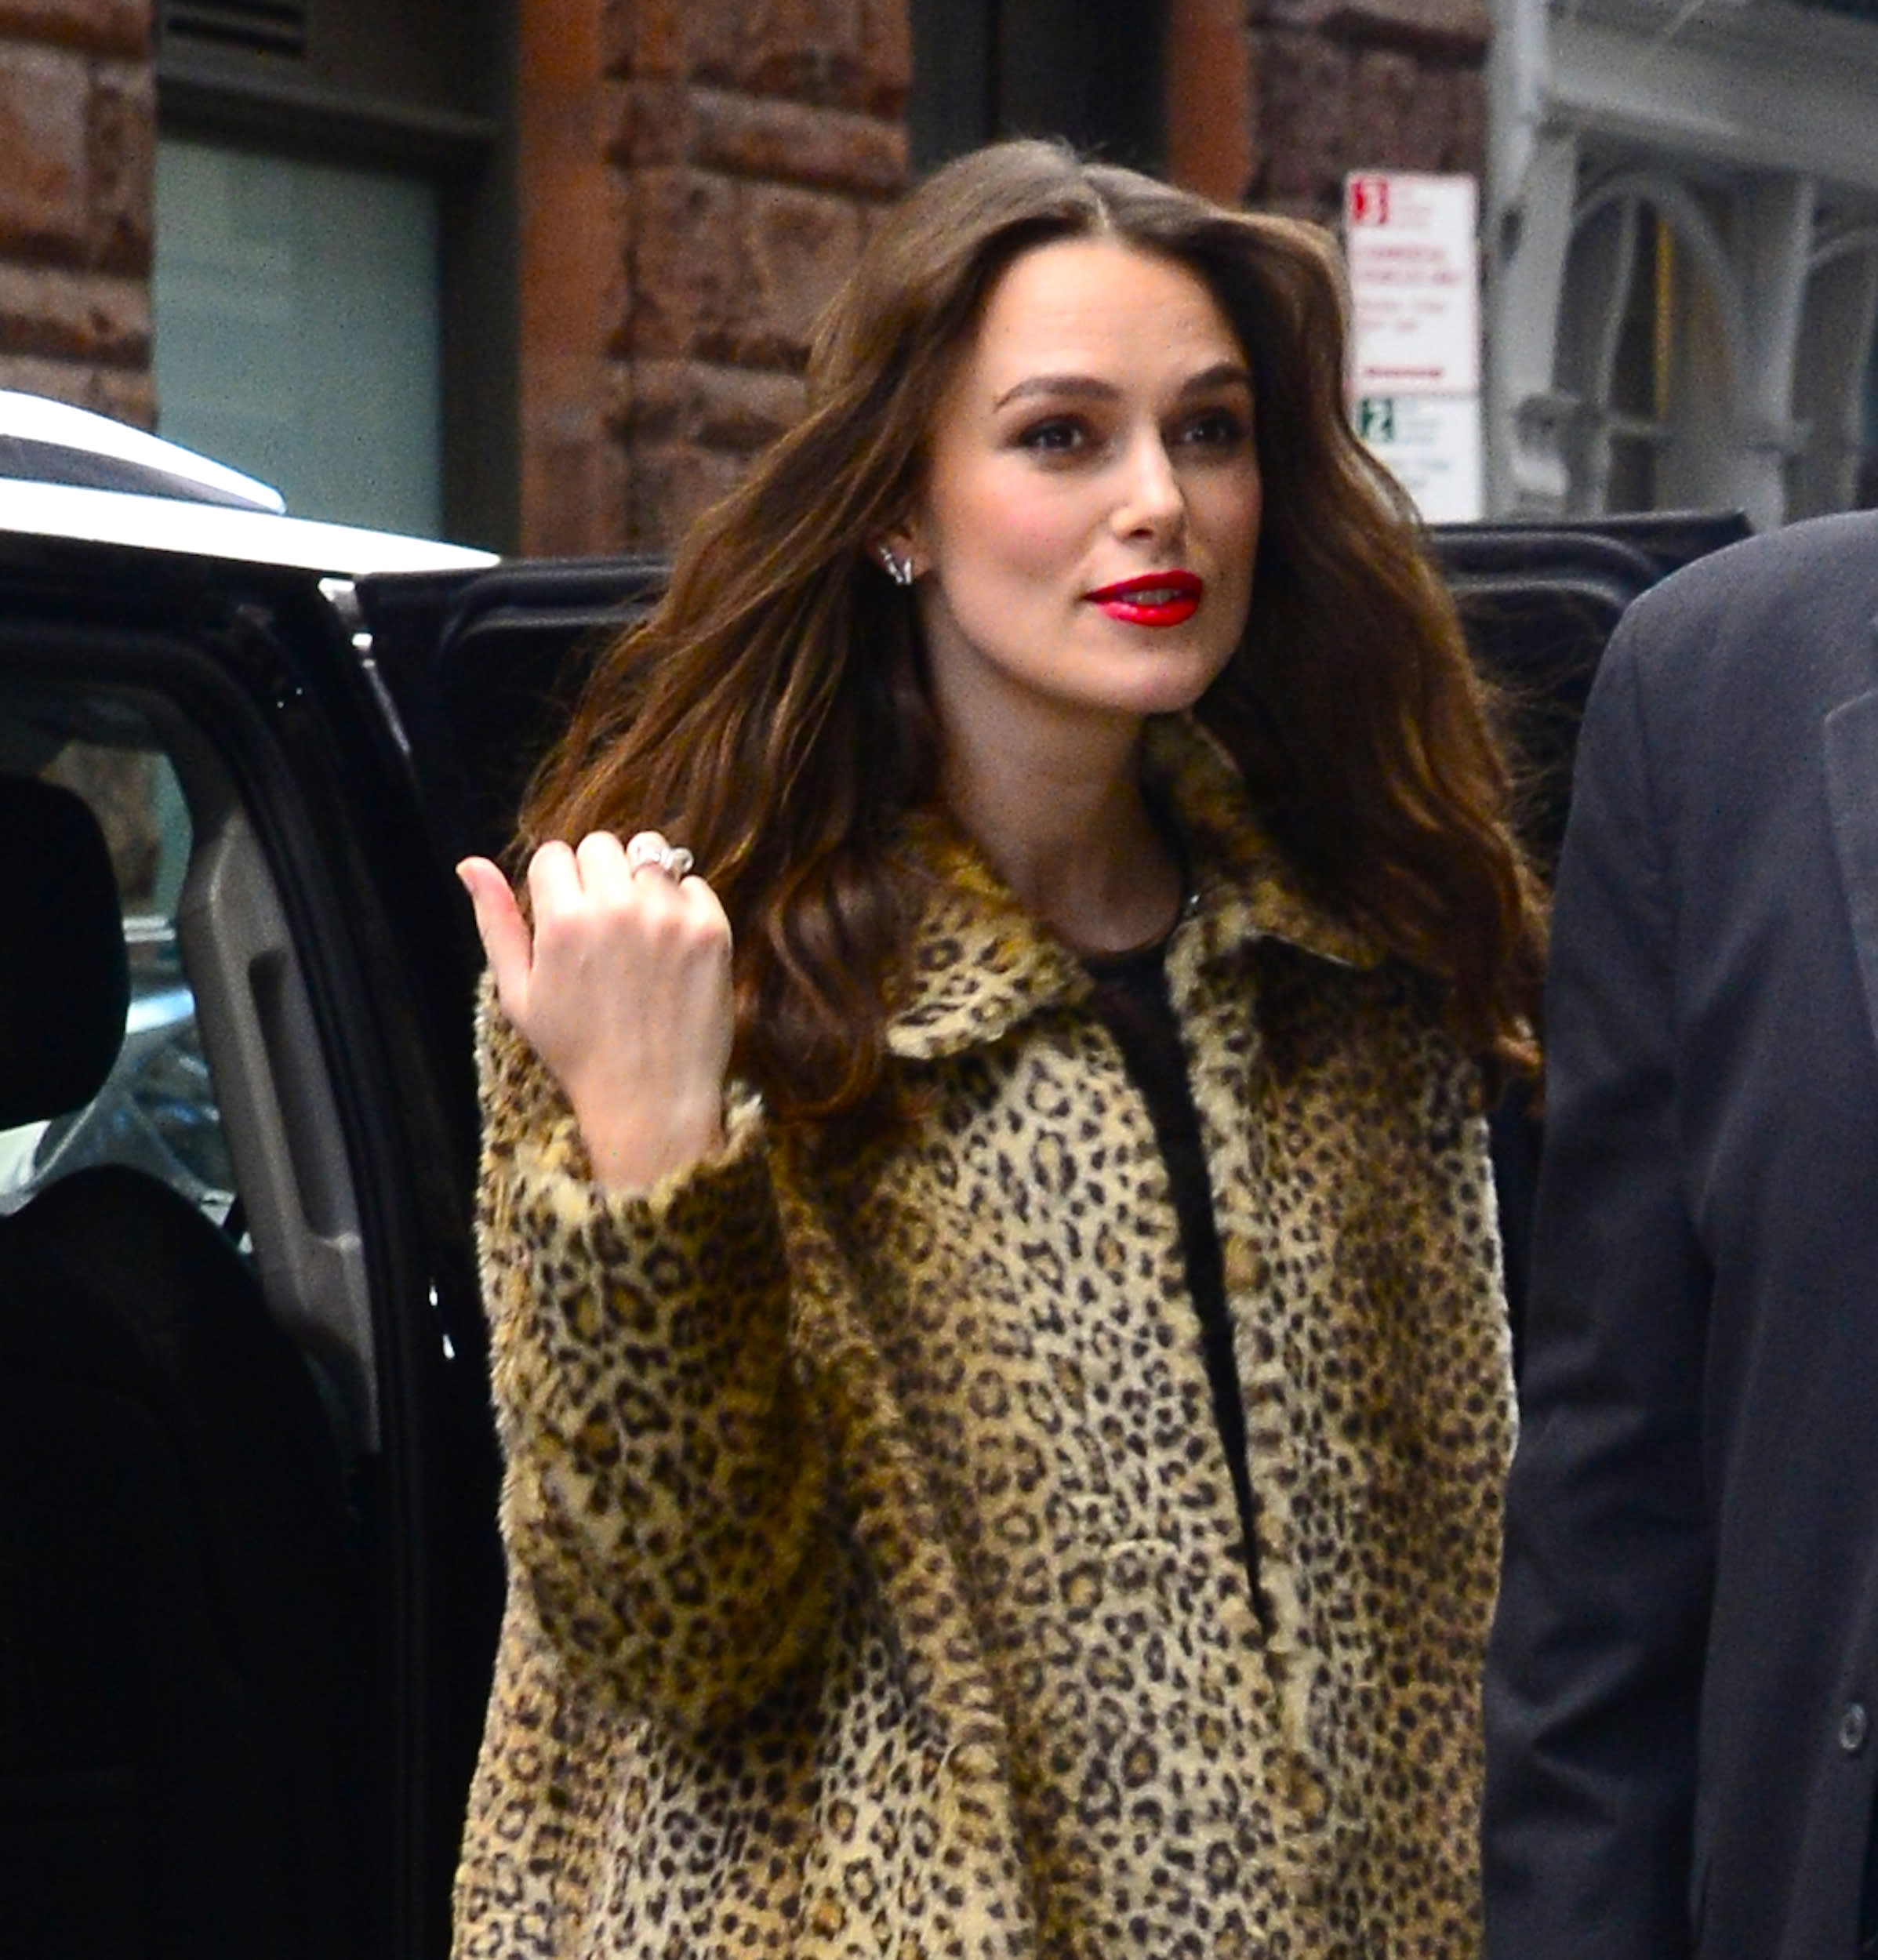 NEW YORK, NY - MARCH 12:  Actress Keira Knightley is seen outside aol build  on March 12, 2019 in New York City.  (Photo by Raymond Hall/GC Images)